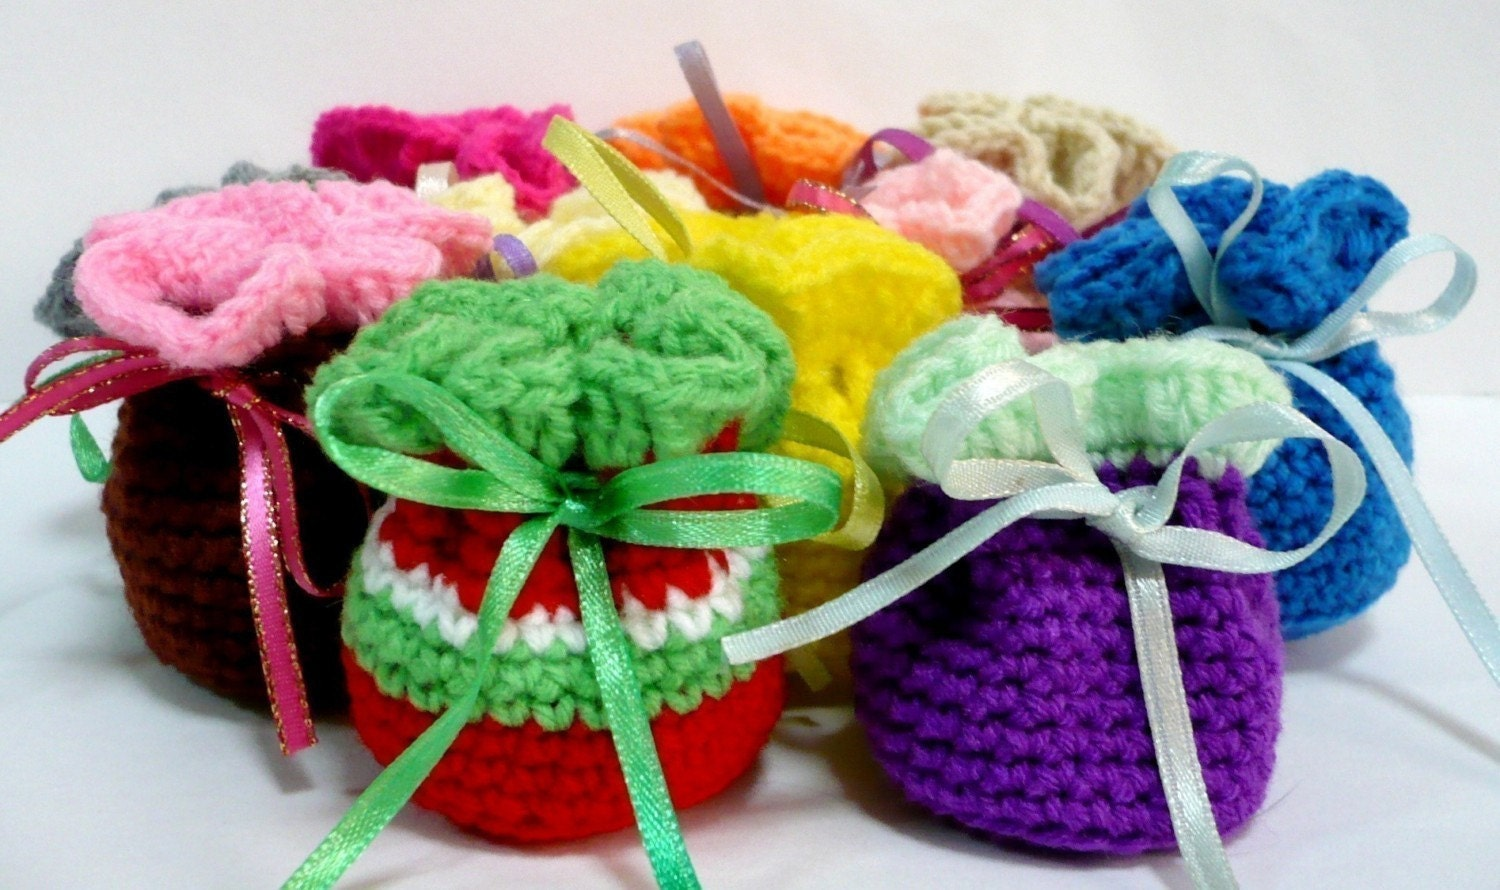 Mini Crochet Bag : Drawstring Pouch Crochet Pattern Small Bag Crochet by melbangel